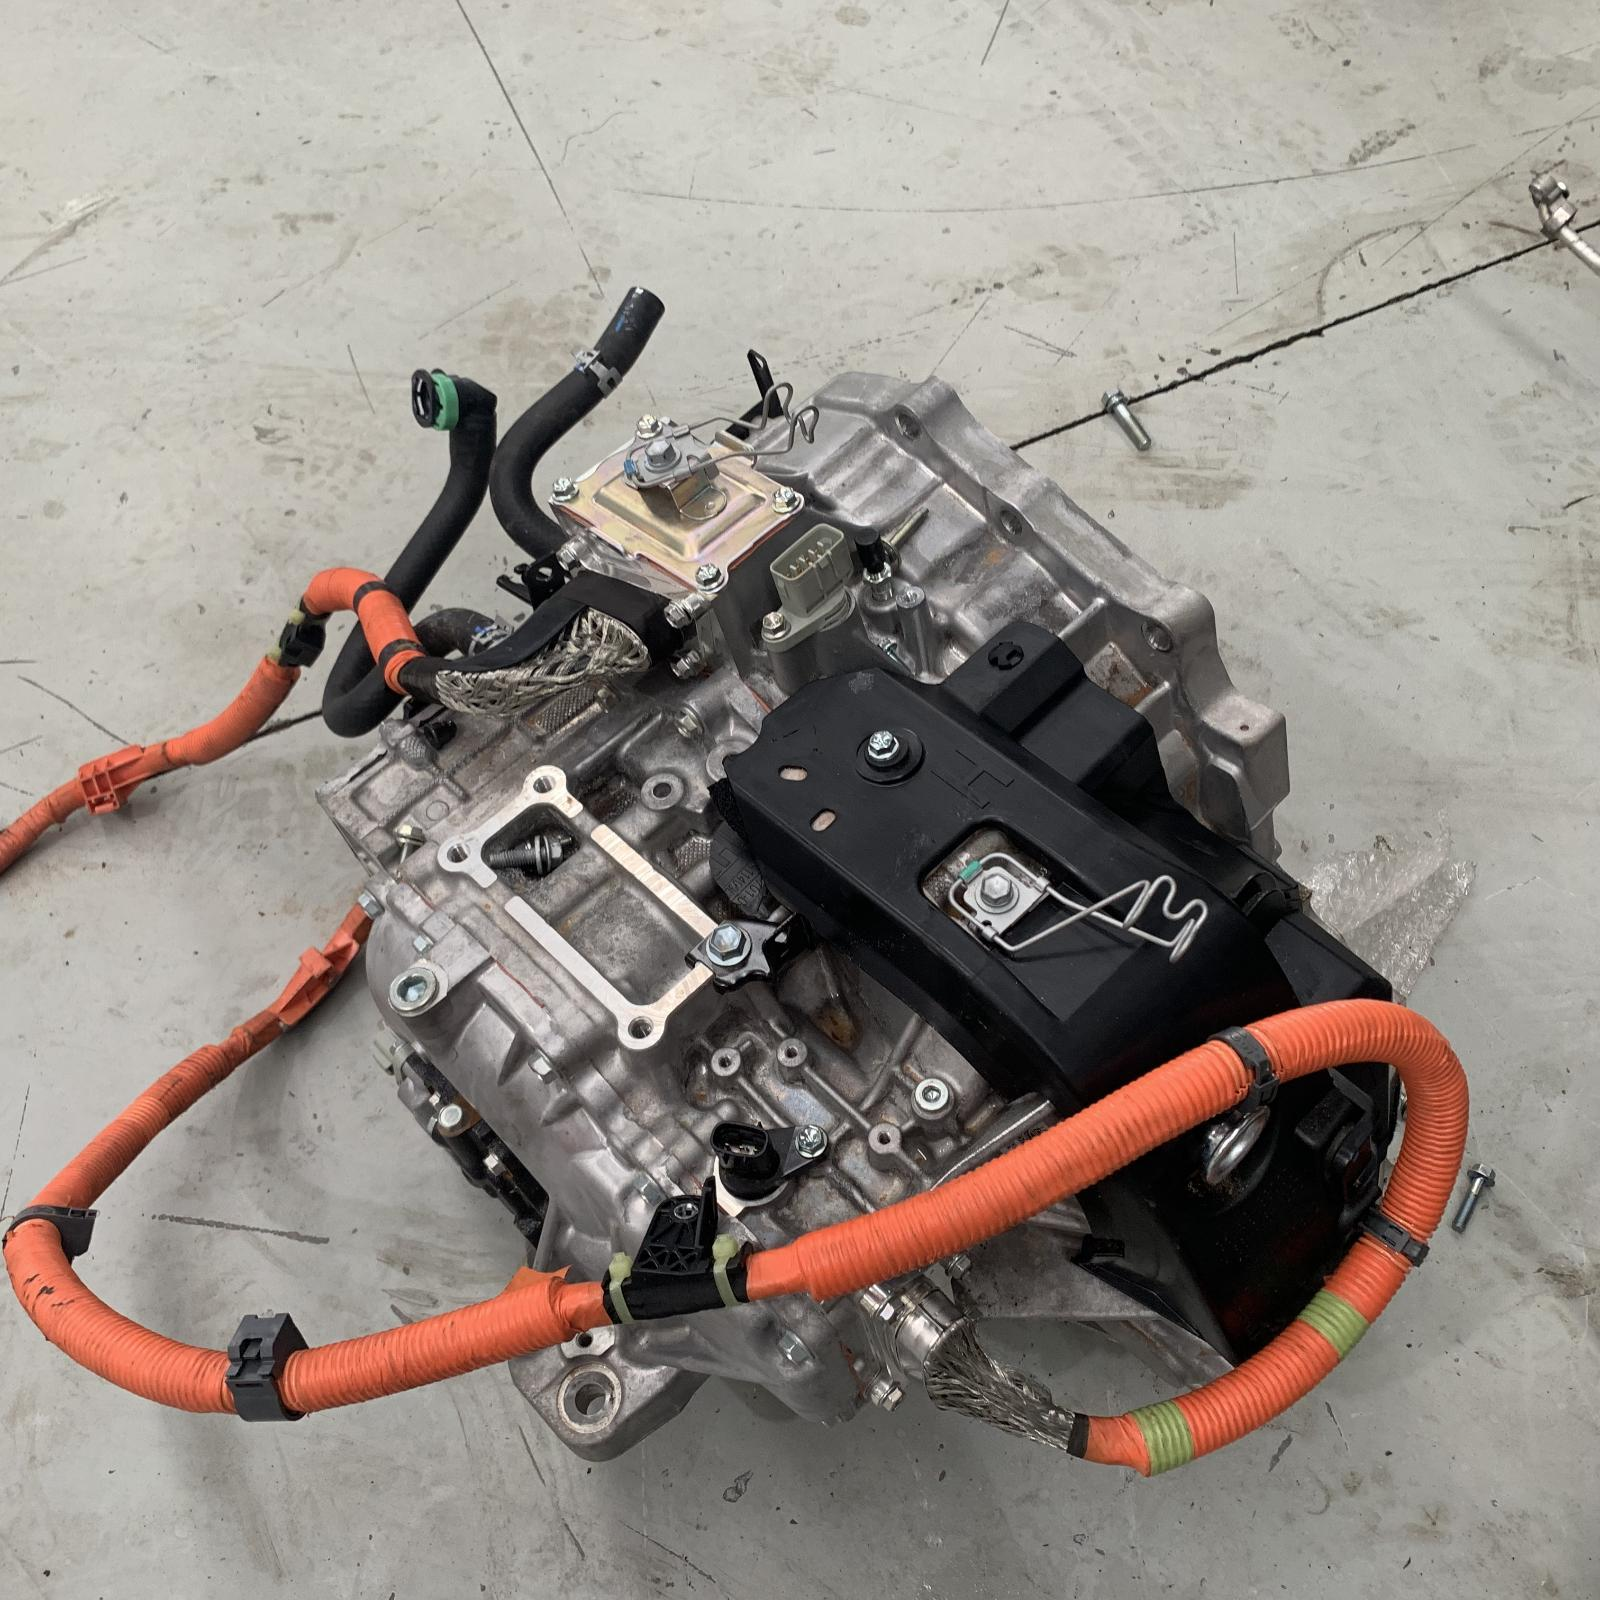 TOYOTA CAMRY, Trans/Gearbox, AUTO, 2.5, 2AR-FXE, HYBRID, ACV50, 03/12-10/17